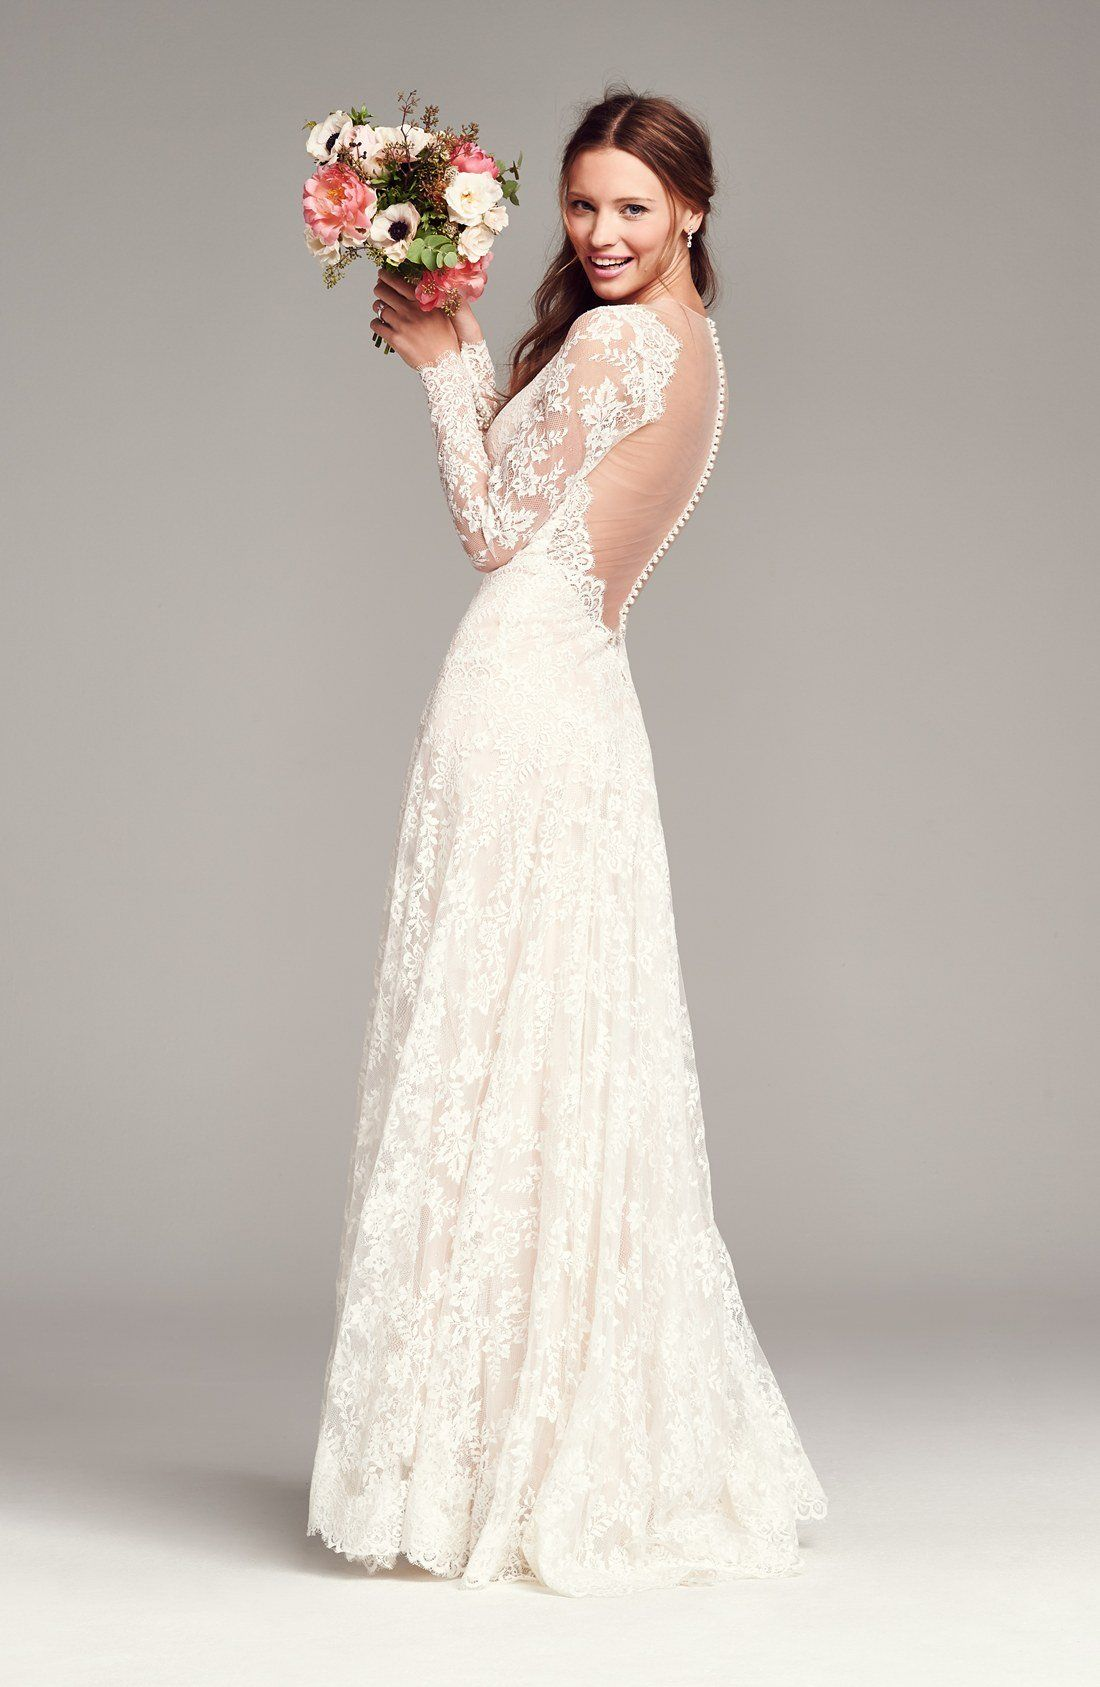 ffb227f6258 The most beautiful gown for a winter wedding!  nordstrom